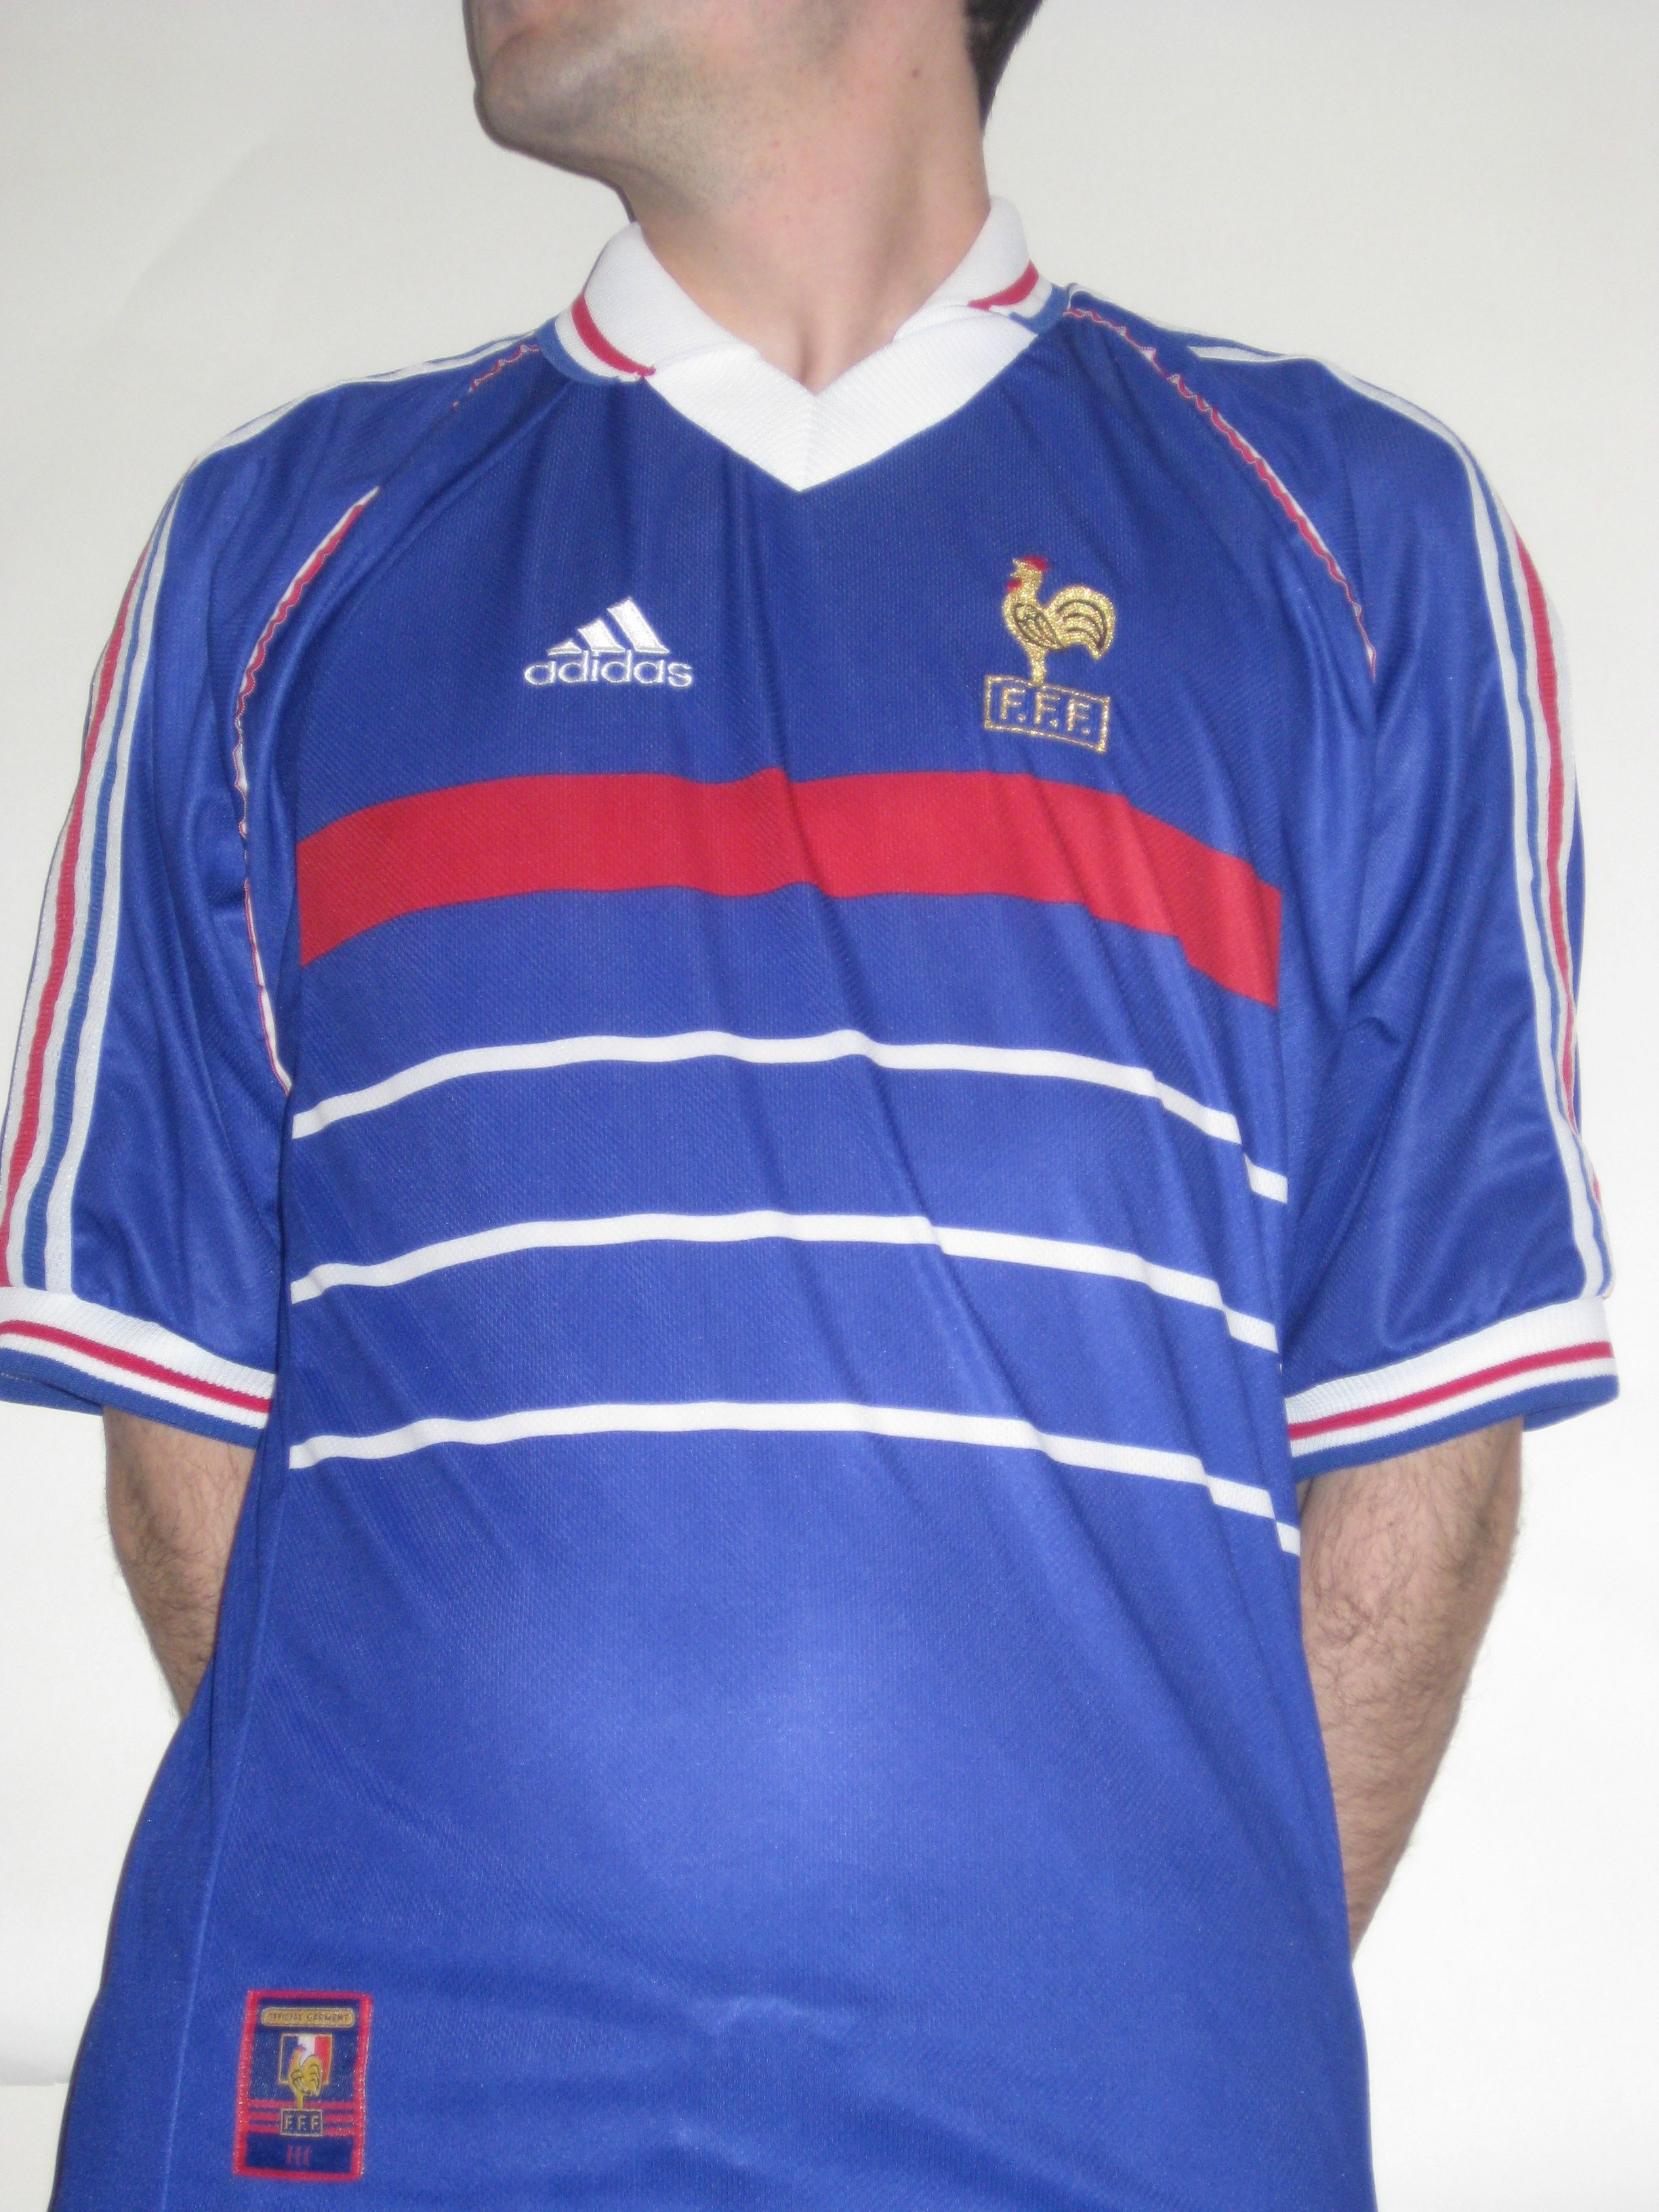 France 1998 Jersey Worn During Their World Cup Winning Campagne On Home Soil On In 1998 Zinedine Zidane Is Introduced T Mens Polo Shirts Mens Tops Football